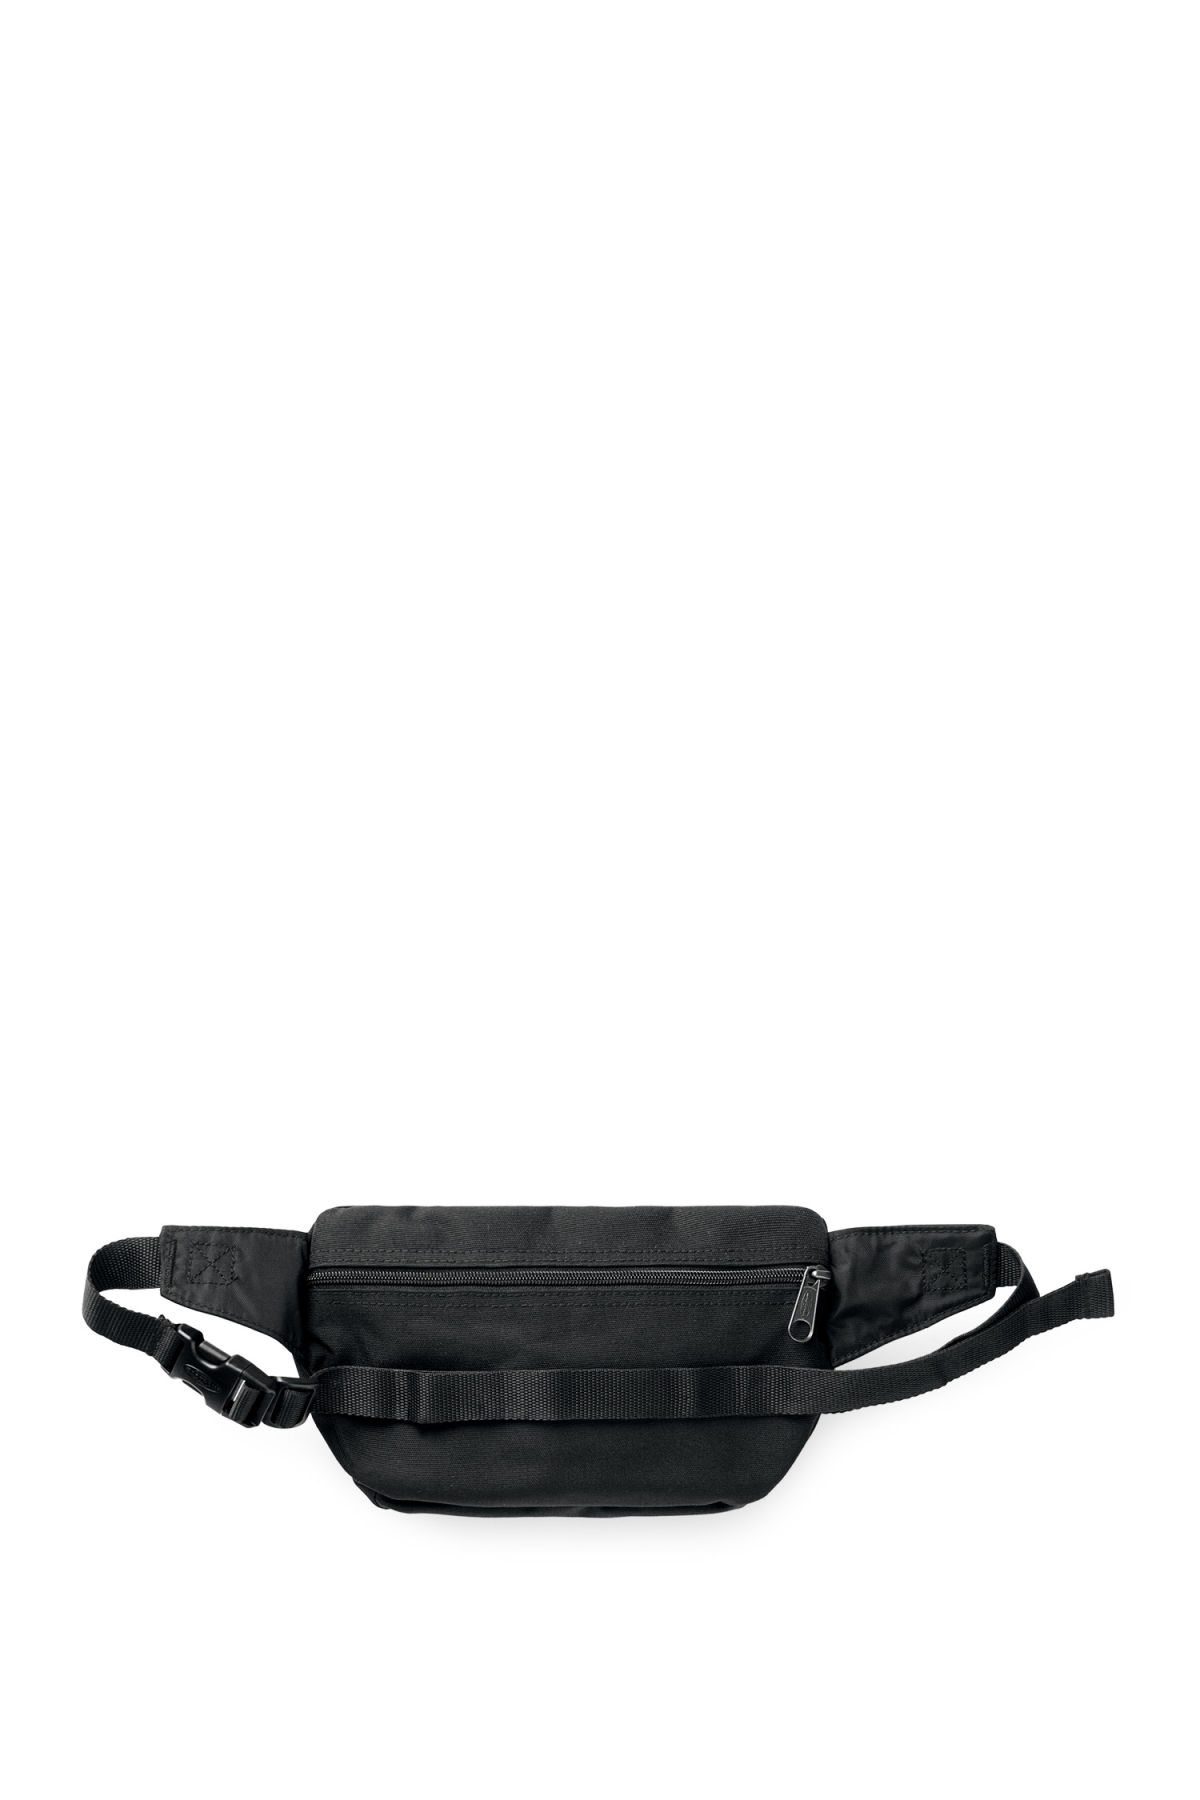 Back image of Weekday doggy bag in black